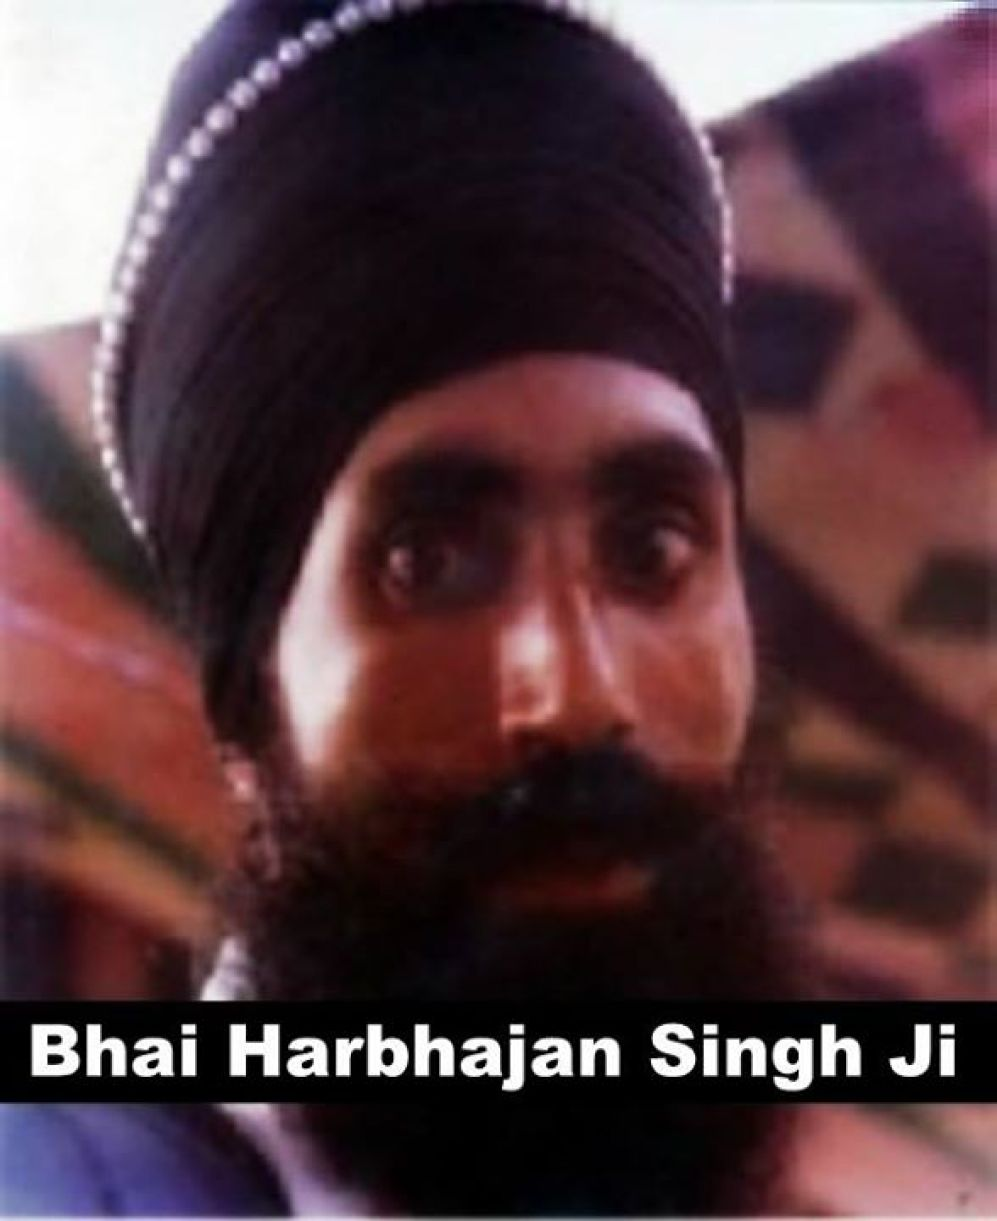 Shaheed Bhai Harbhajan Singh 13th April 1978